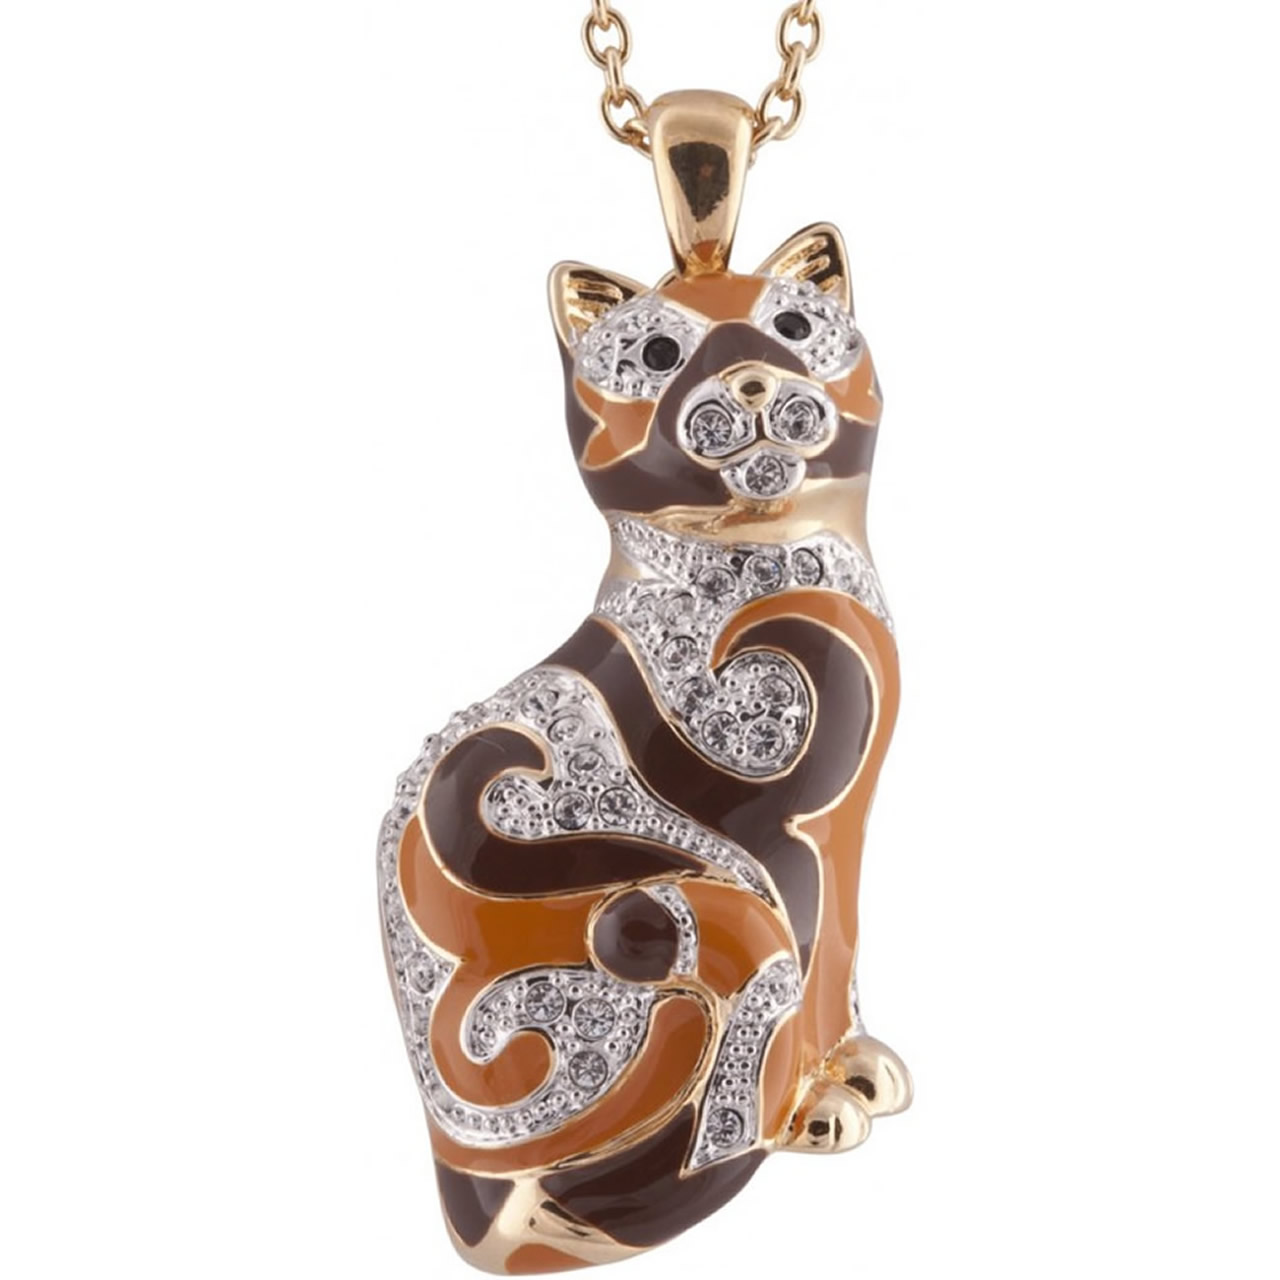 Gold Plated Swirled Pattern Cat Brooch On Chain